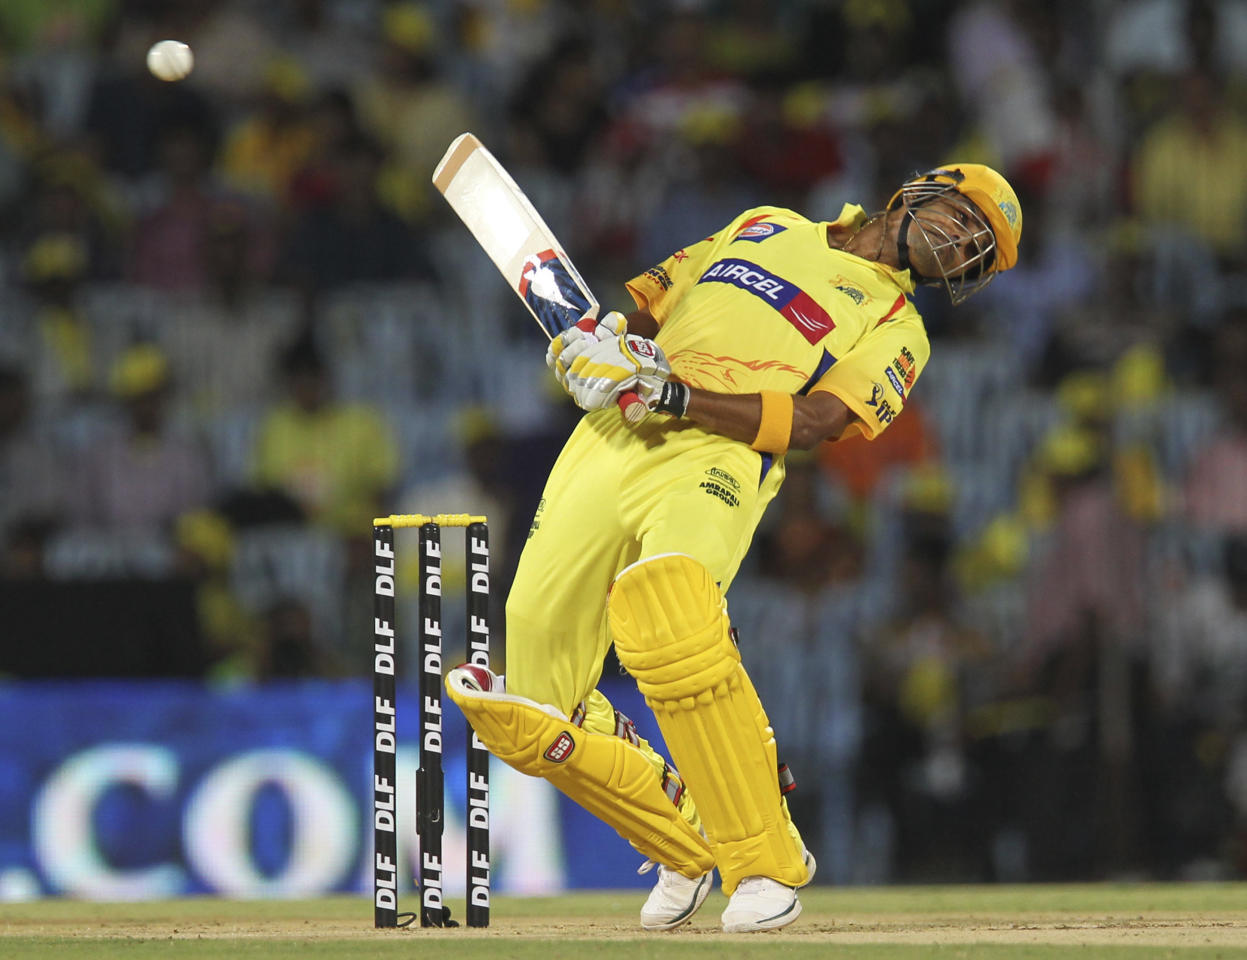 Chennai Super Kings batsman Subramaniam Badrinath avoids a bouncer from Pune Warriors bowler Ashish Nehra during the IPL Twenty20 cricket match between Chennai Super Kings and Pune Warriors at The M.A. Chidambaram Stadium in Chennai on April 19, 2012.